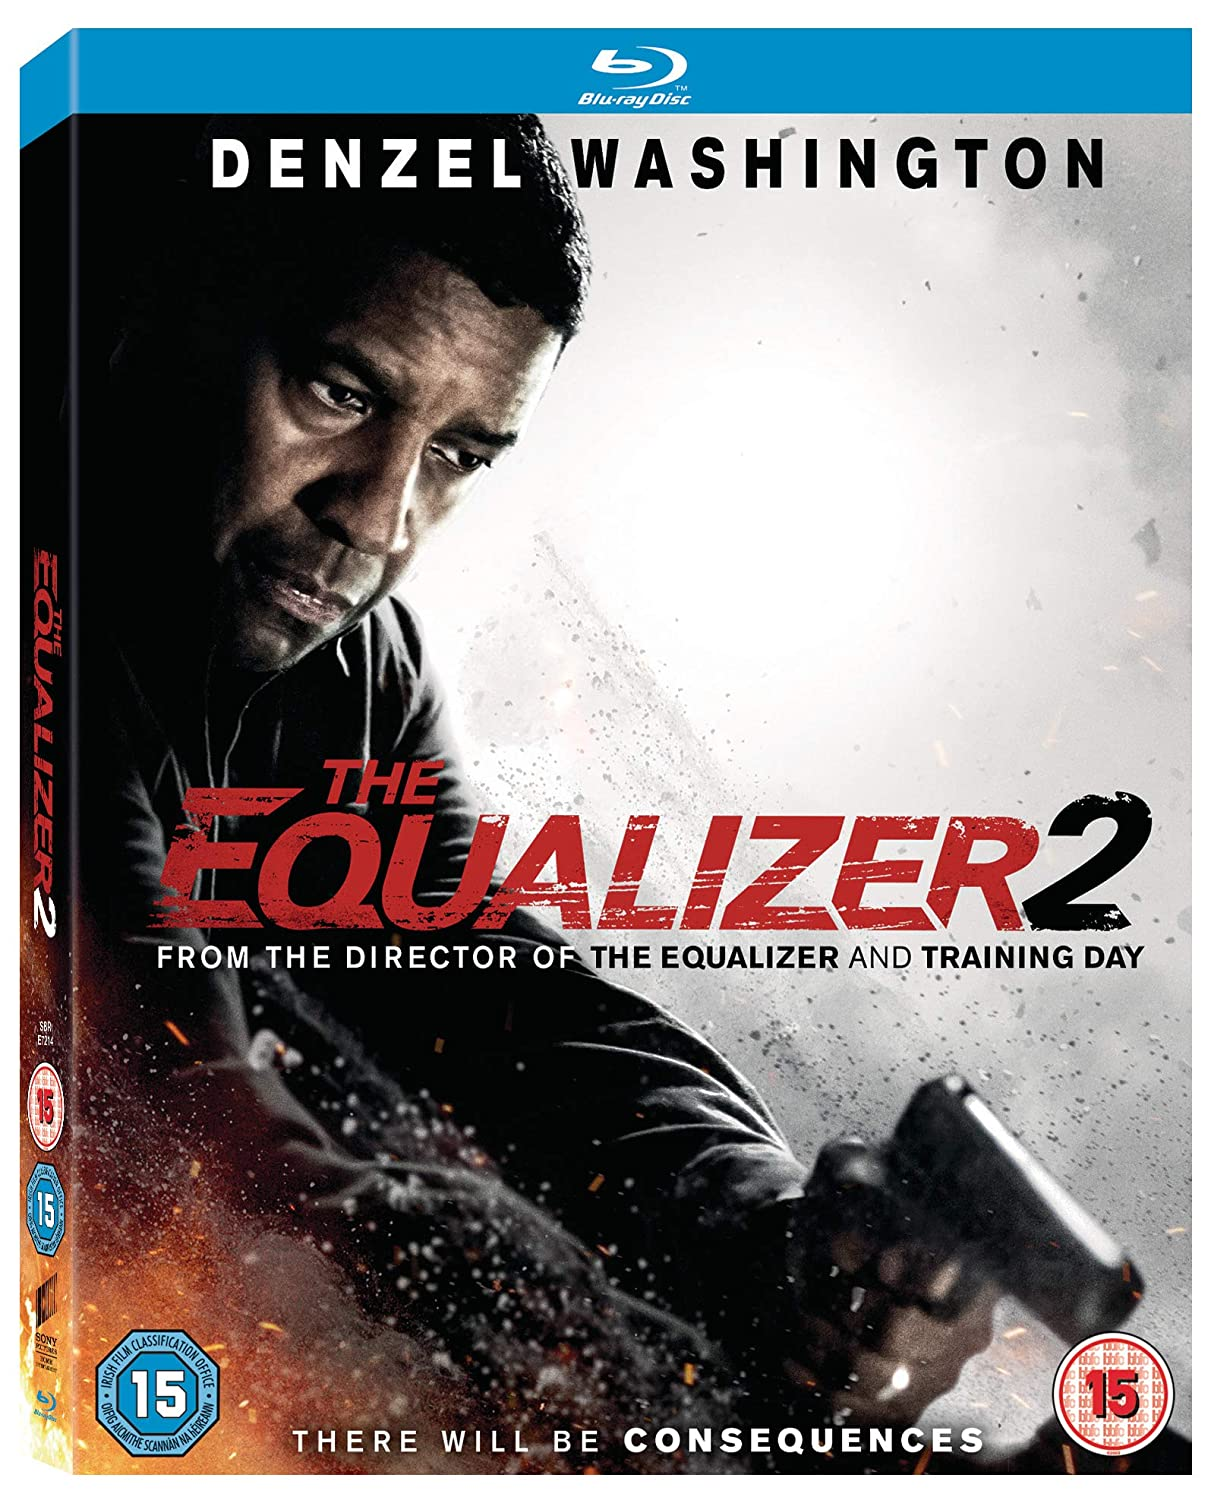 amazon com the equalizer 2 [blu ray] [2018] denzel The Equalizer 2014 Poster